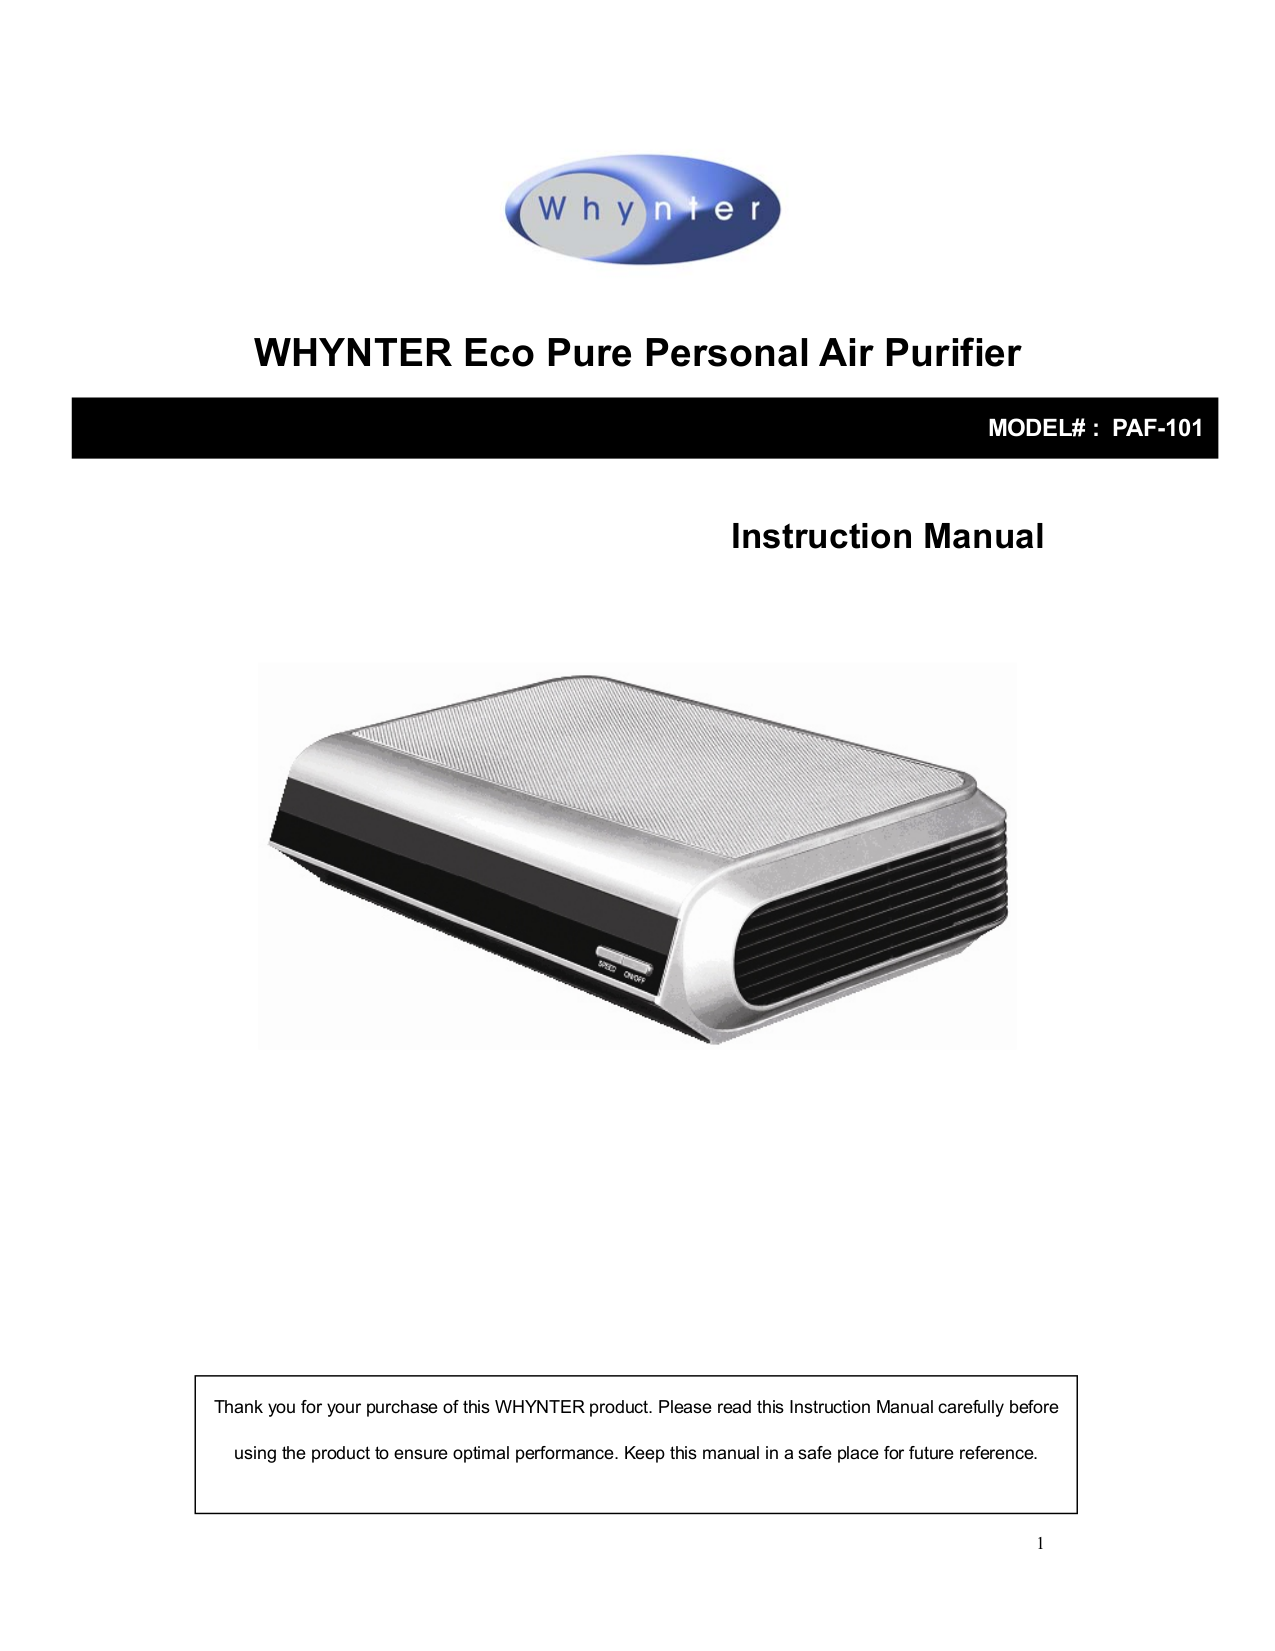 pdf for Whynter Air Purifier PAF-101 manual